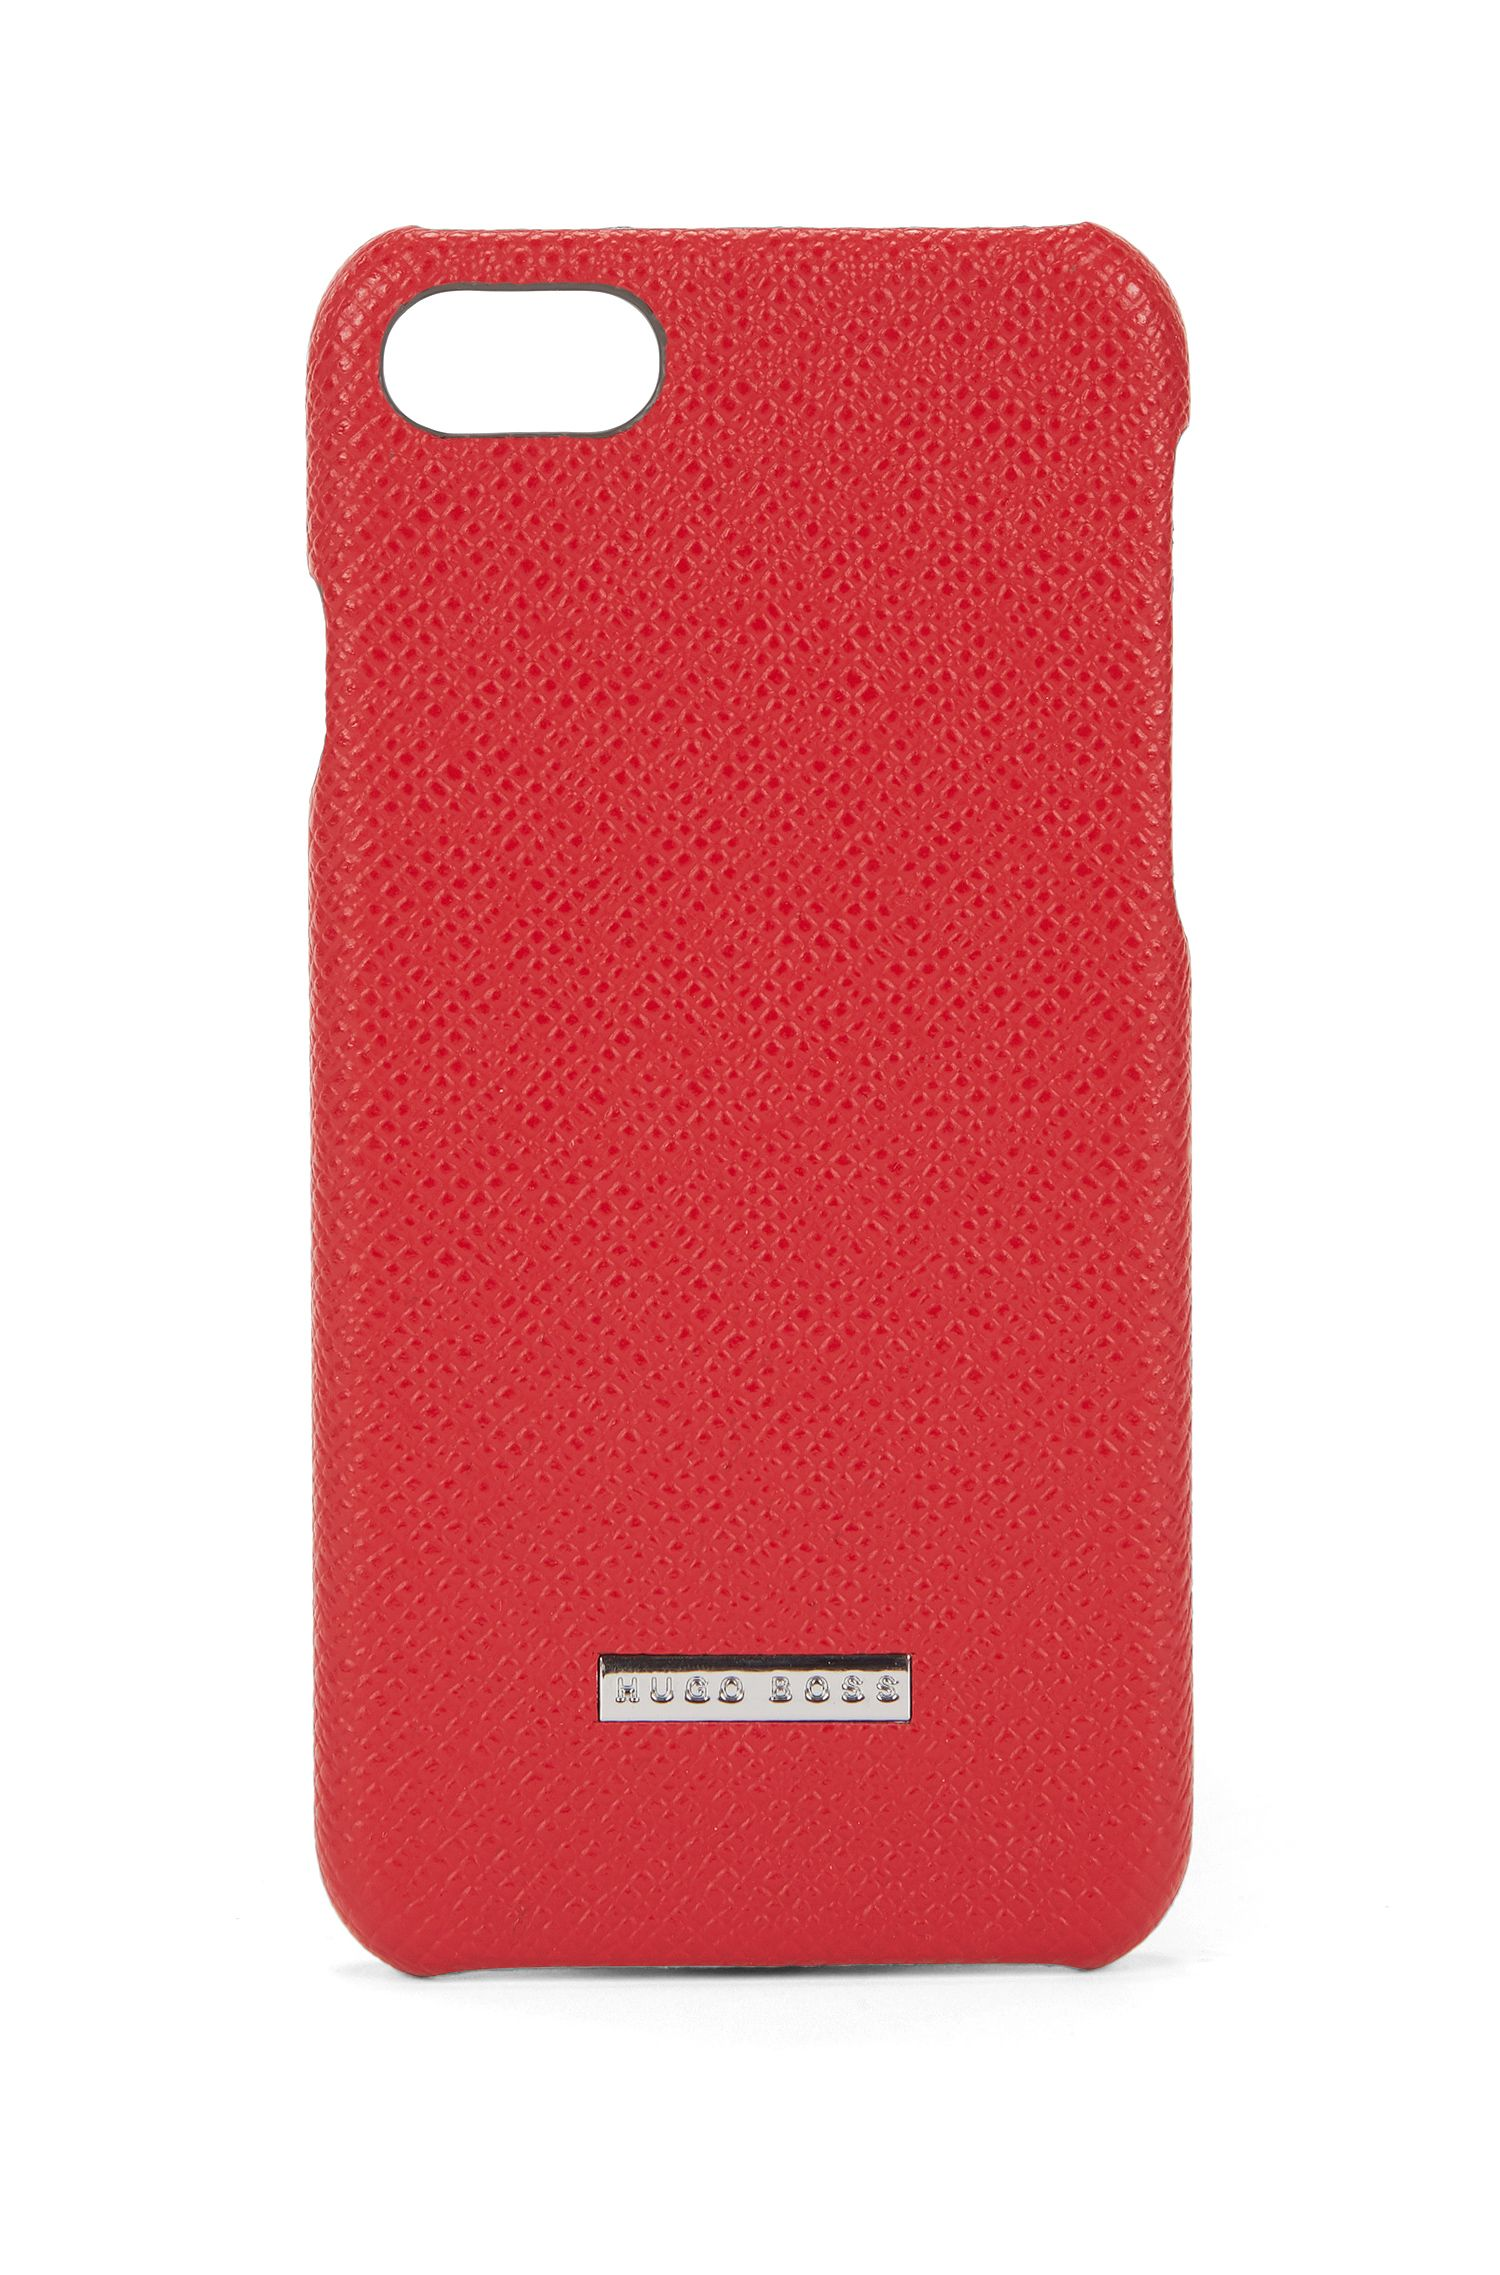 Embossed leather iPhone 7 Case | Signature Phone 7